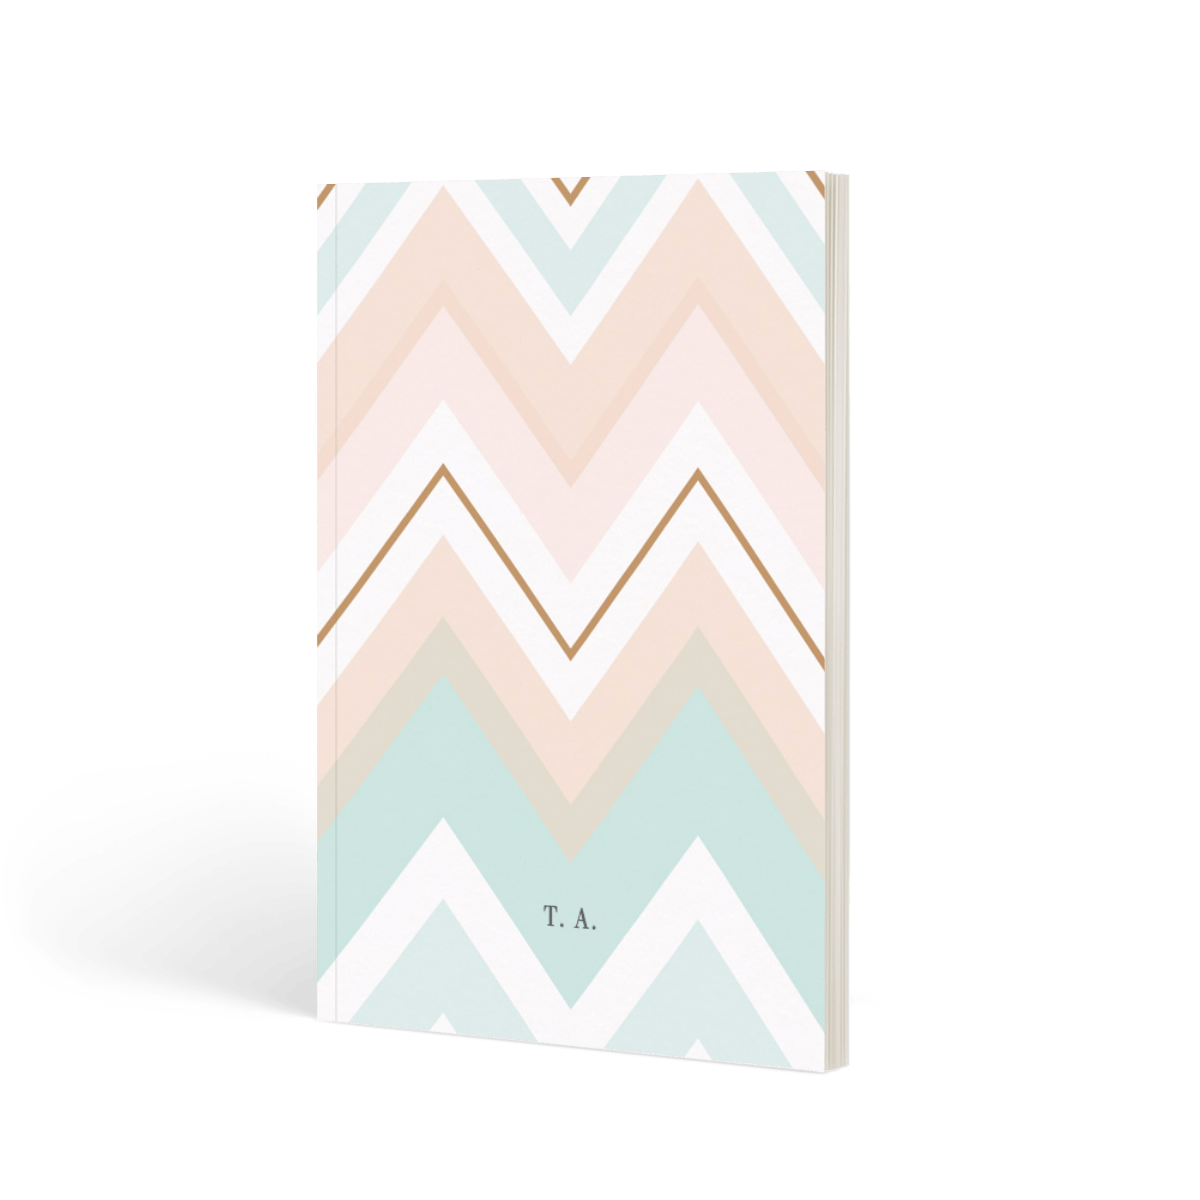 Https%3a%2f%2fwww.papier.com%2fproduct image%2f6541%2f6%2fchevron monogram 1642 front 1461586839.png?ixlib=rb 1.1